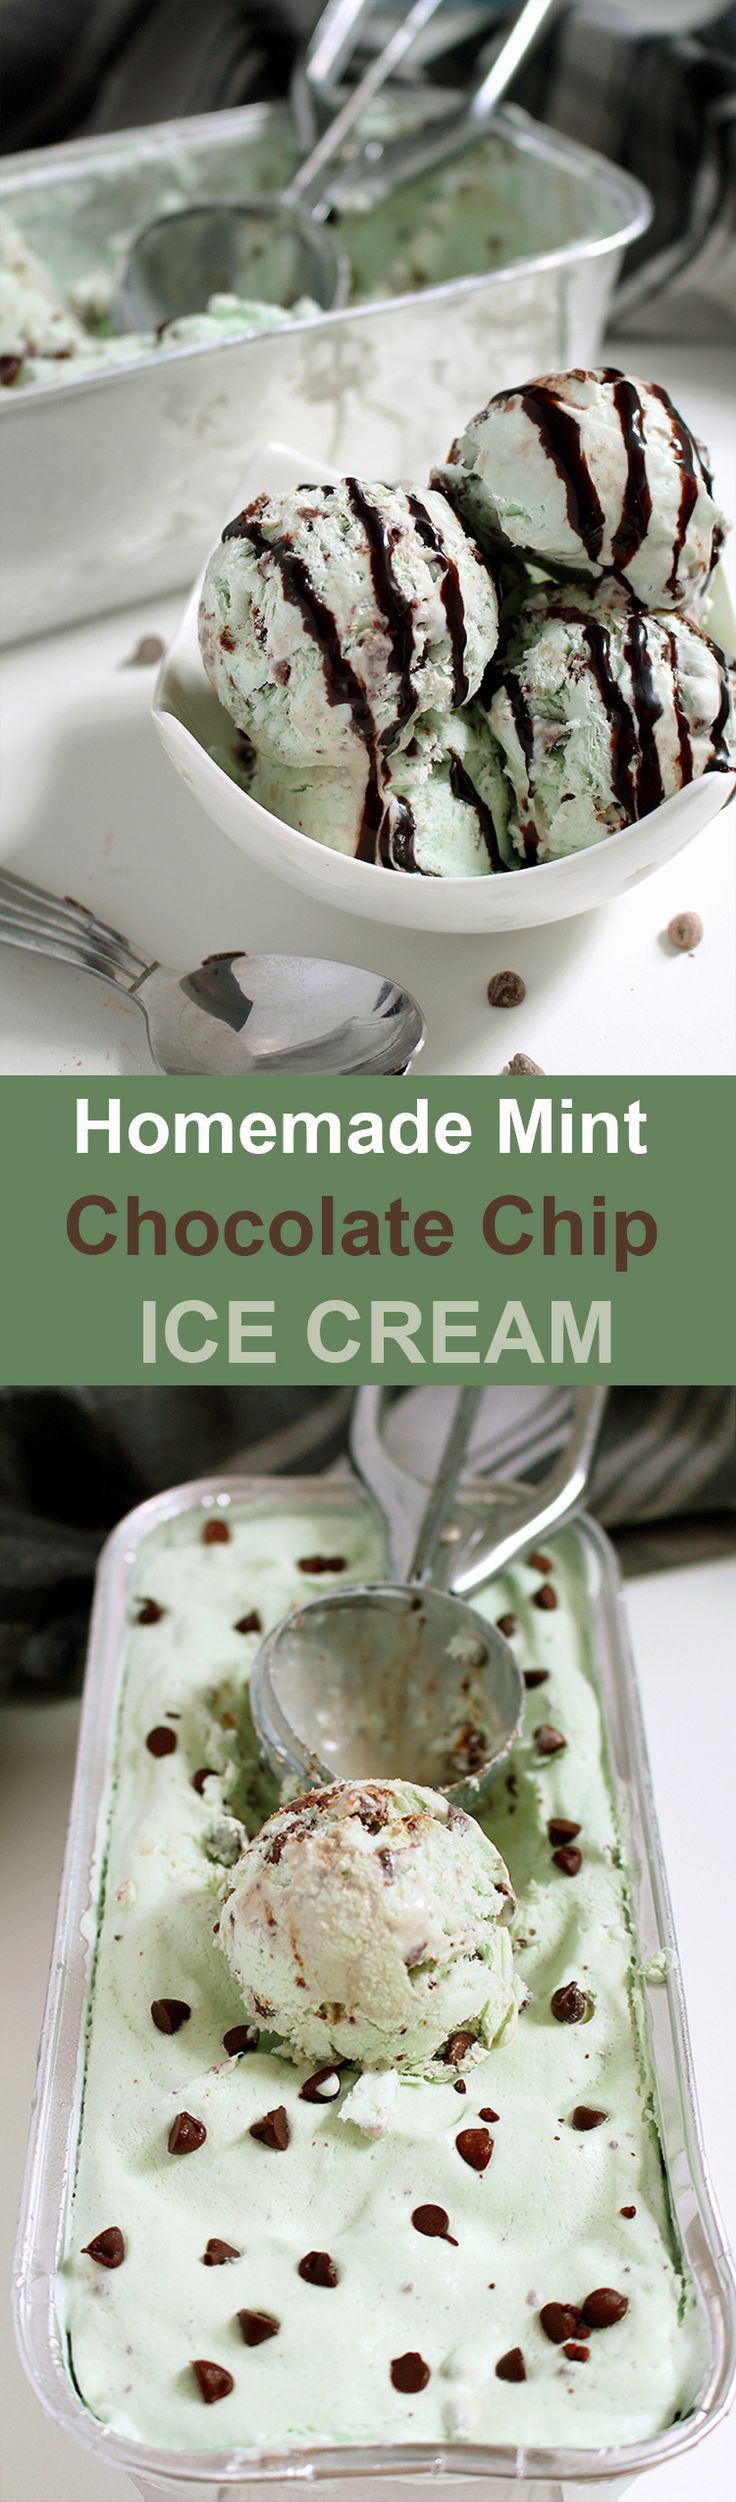 Easy summer dessert recipe - Homemade Mint Chocolate Chip Ice Cream.. One of those moments when we are all children..